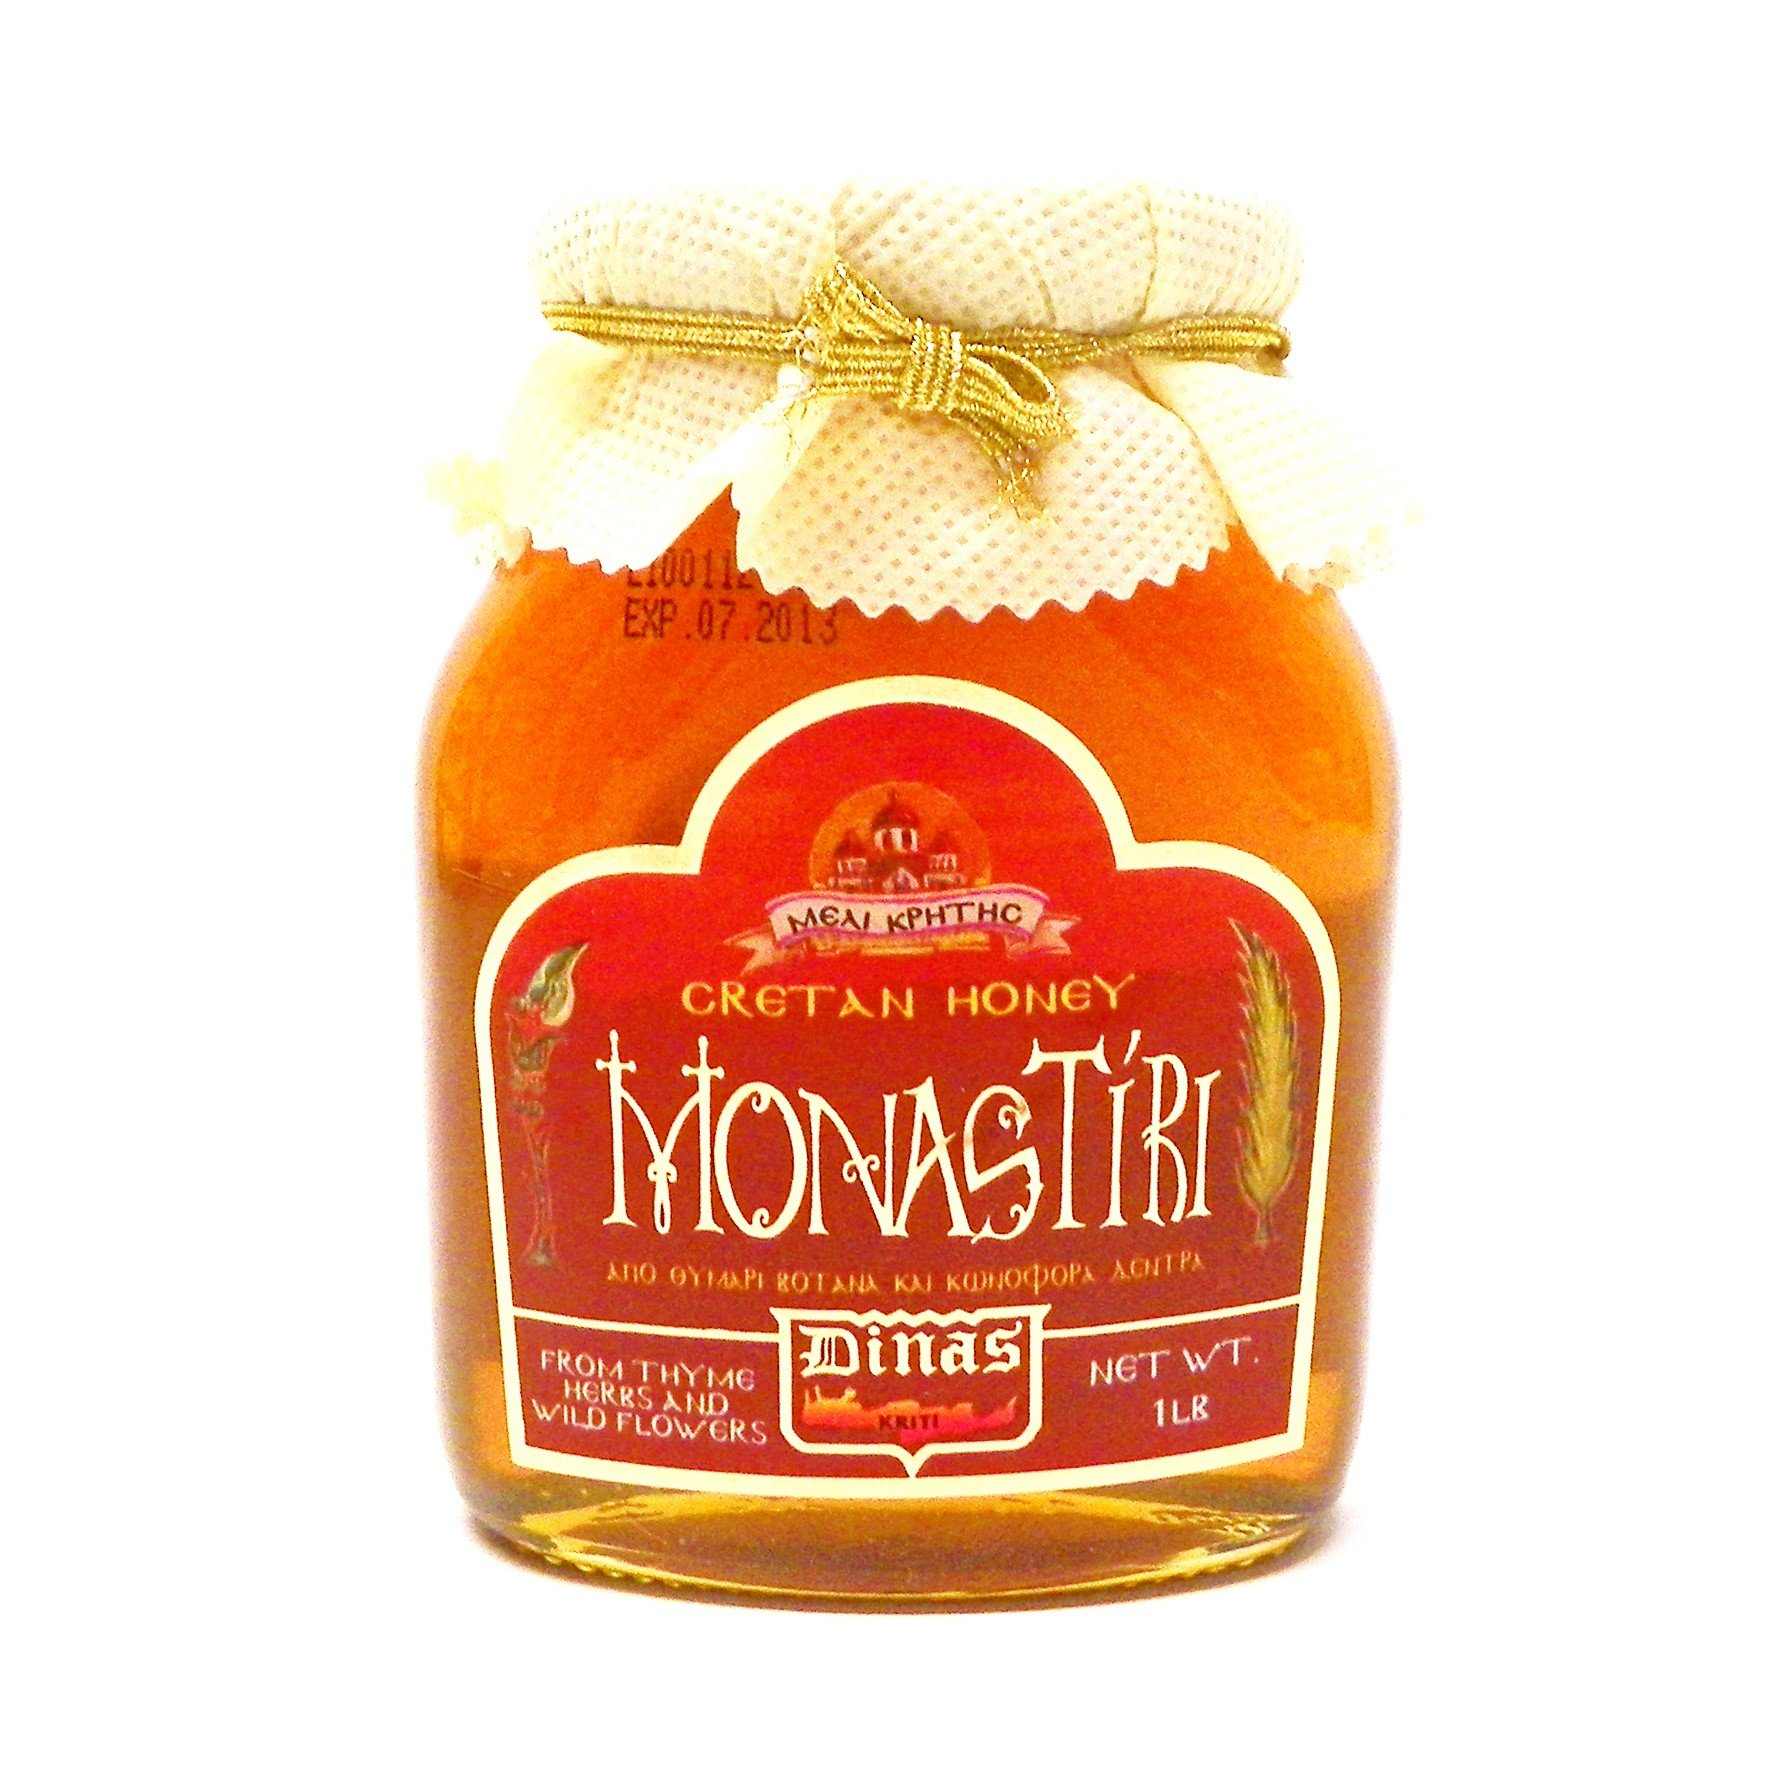 Dinas Greek Monastiri Wilflower and Thyme Honey, 16oz